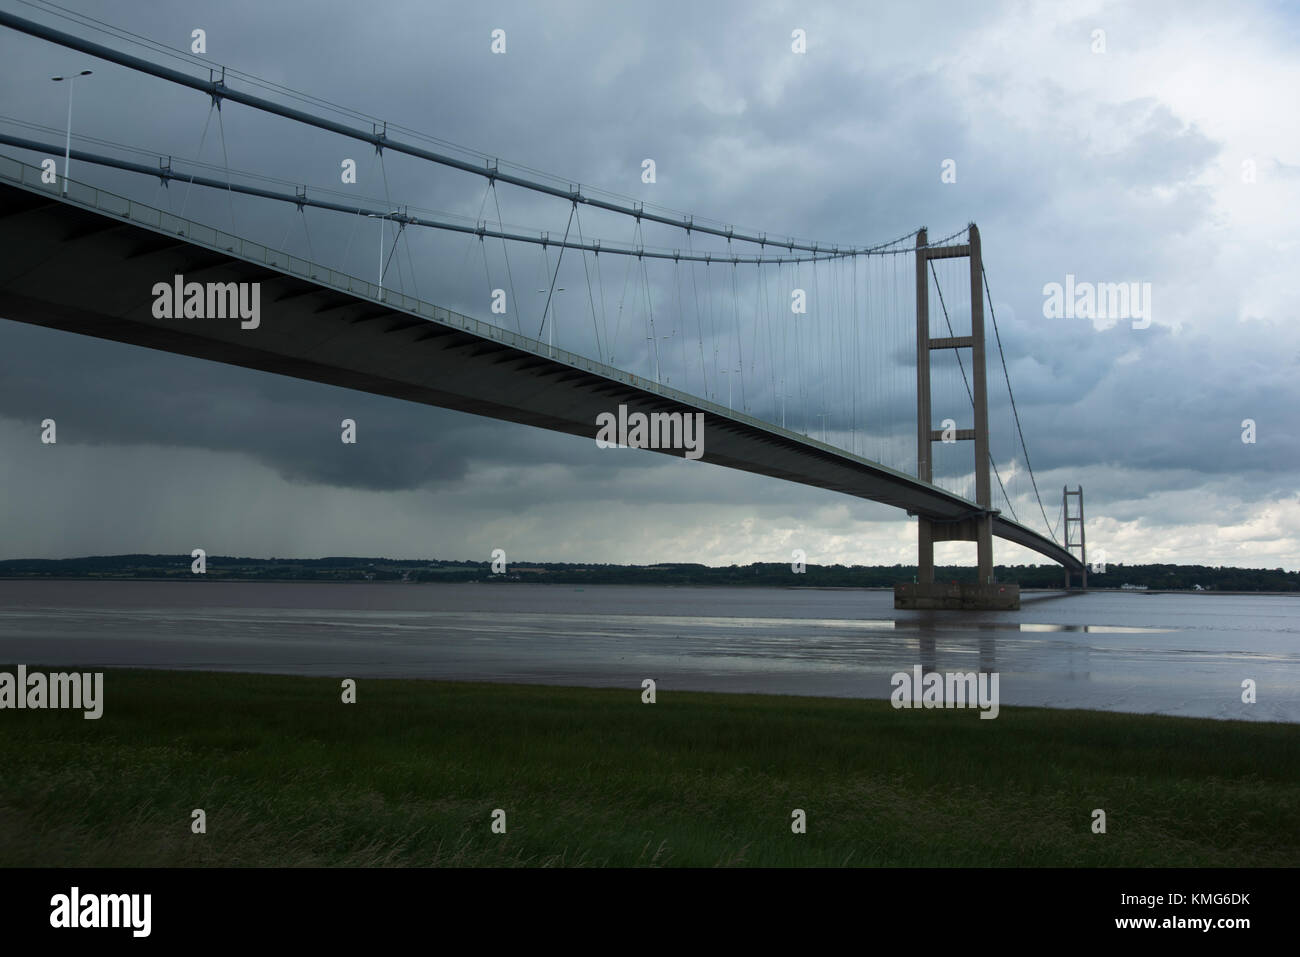 Humber Bridge, River Humber, England, UK. - Stock Image